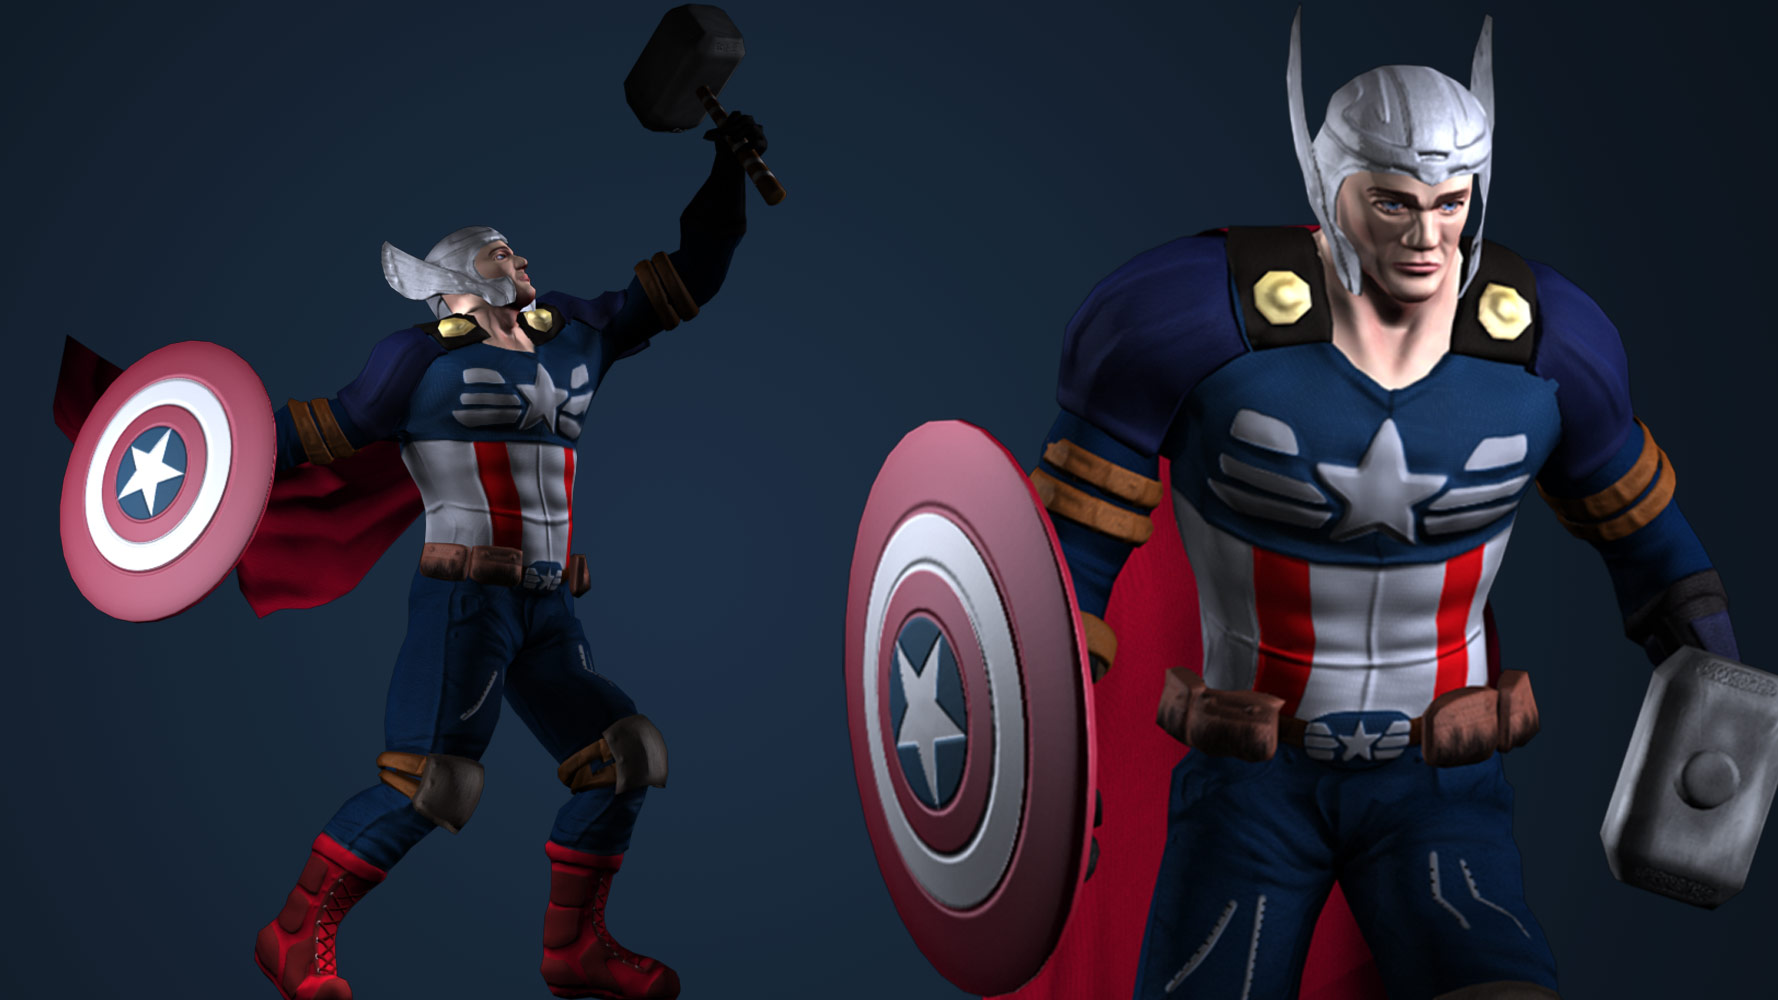 images/Captain Thor Character Design